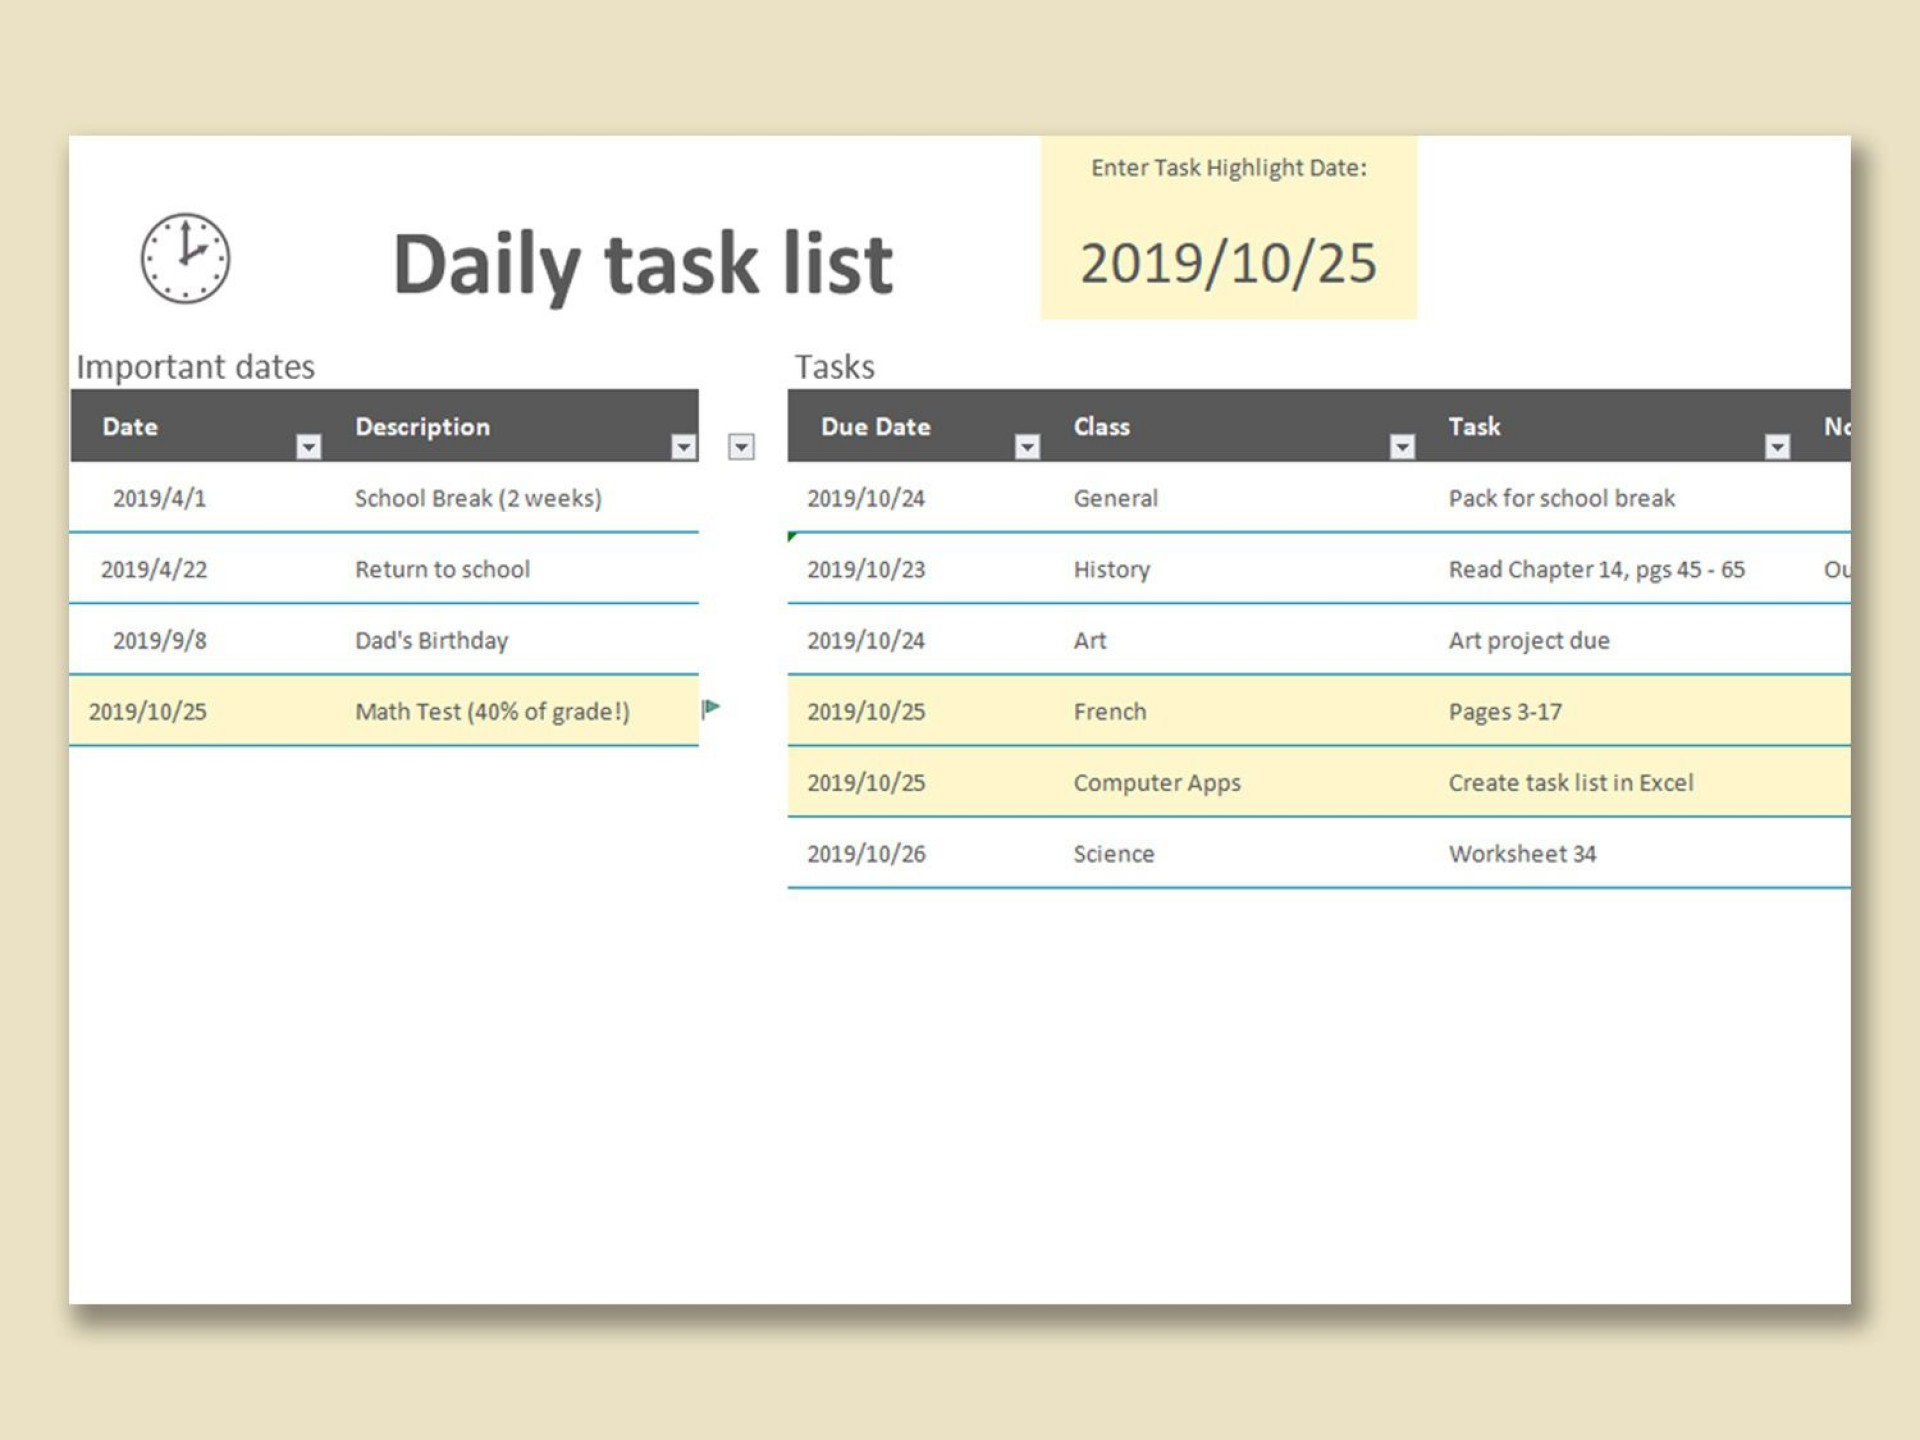 002 Incredible Daily Task List Template Design  Excel Download To Do Free1920